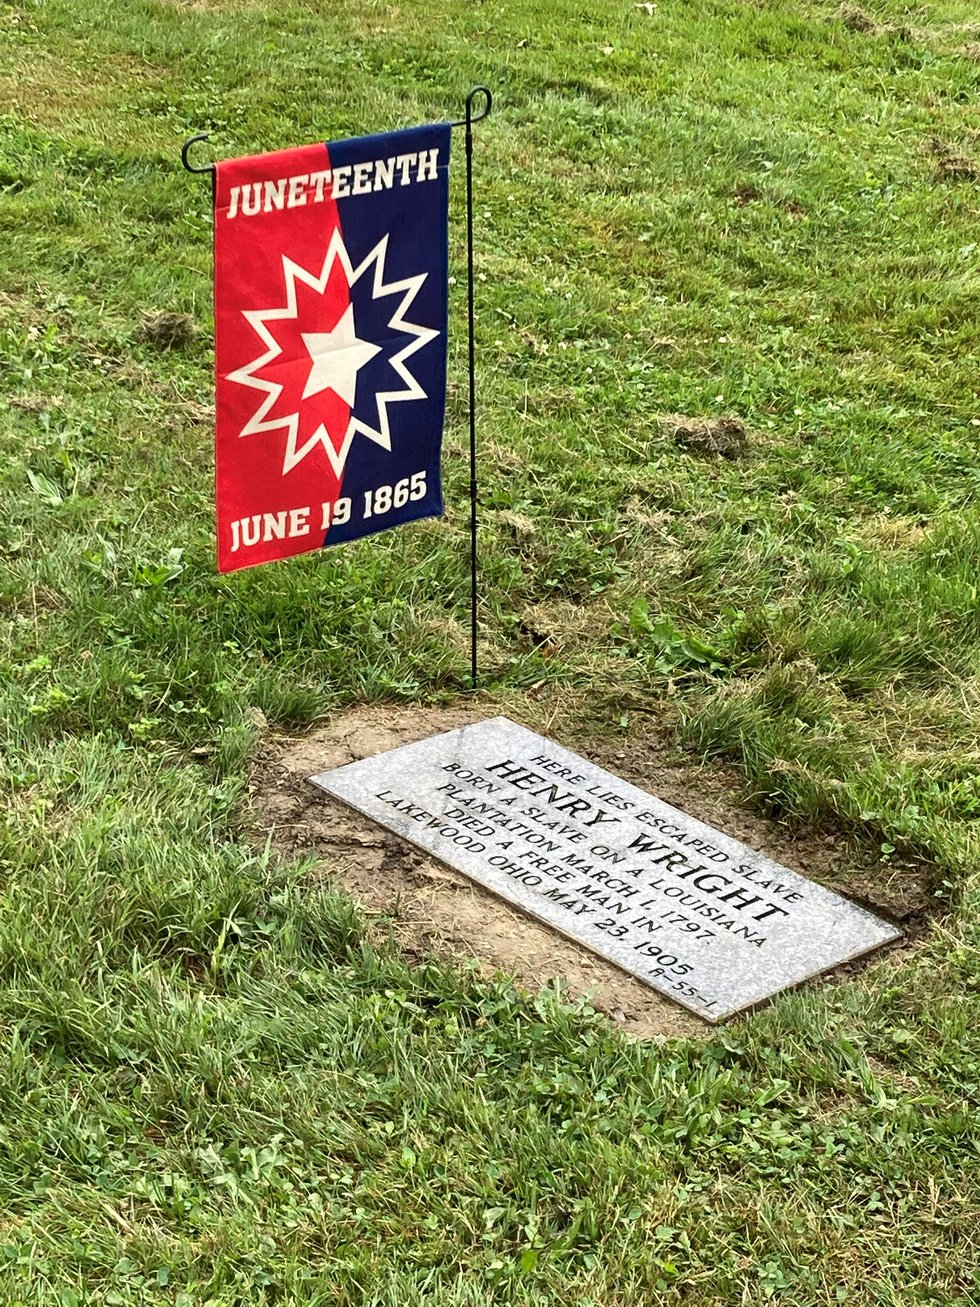 Henry Wright's grave received a marker 116 years after his death.